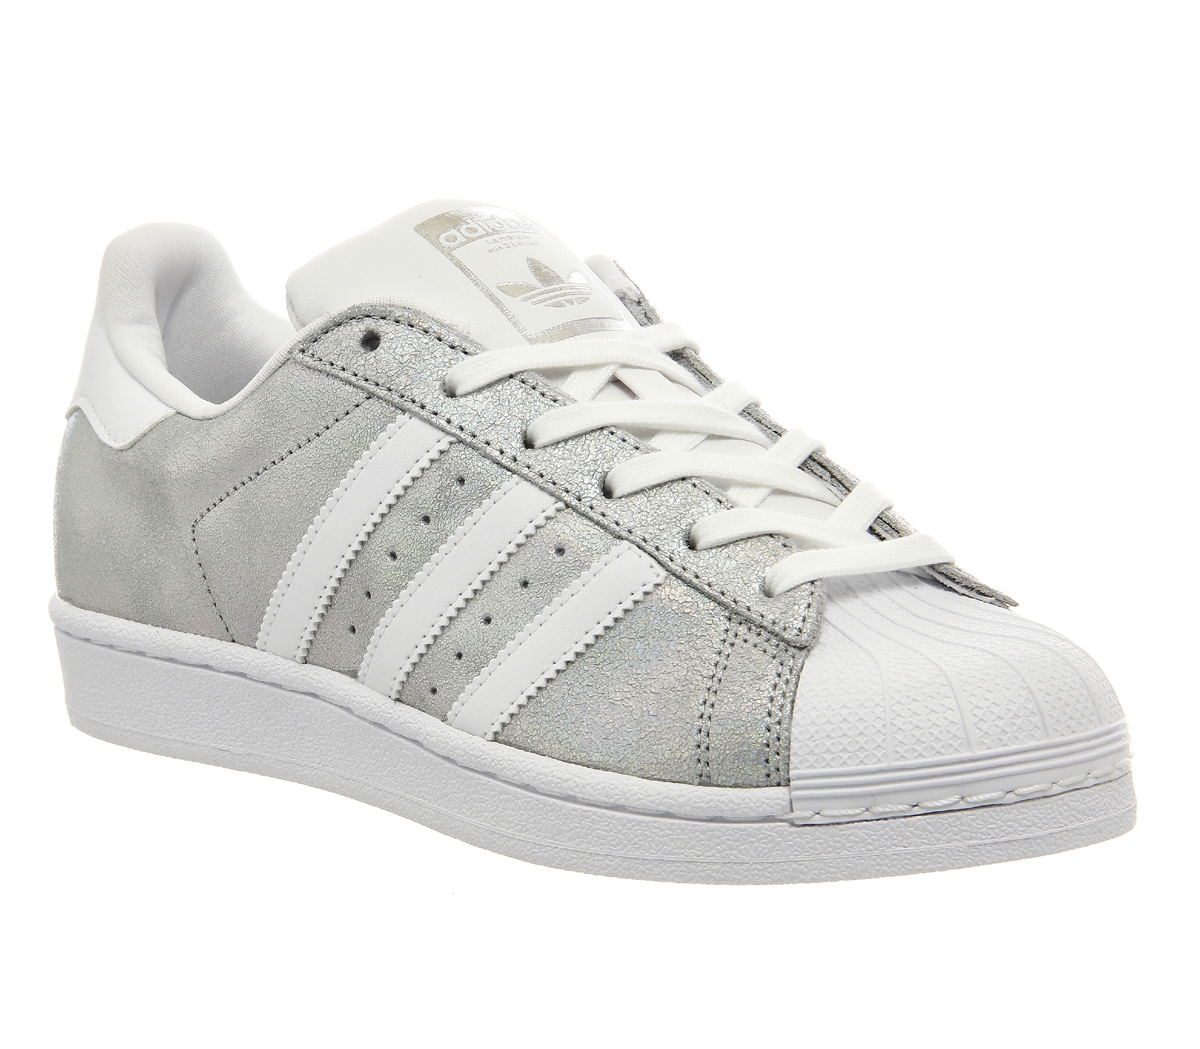 adidas superstar 2 holographic silver w trainers shoes. Black Bedroom Furniture Sets. Home Design Ideas